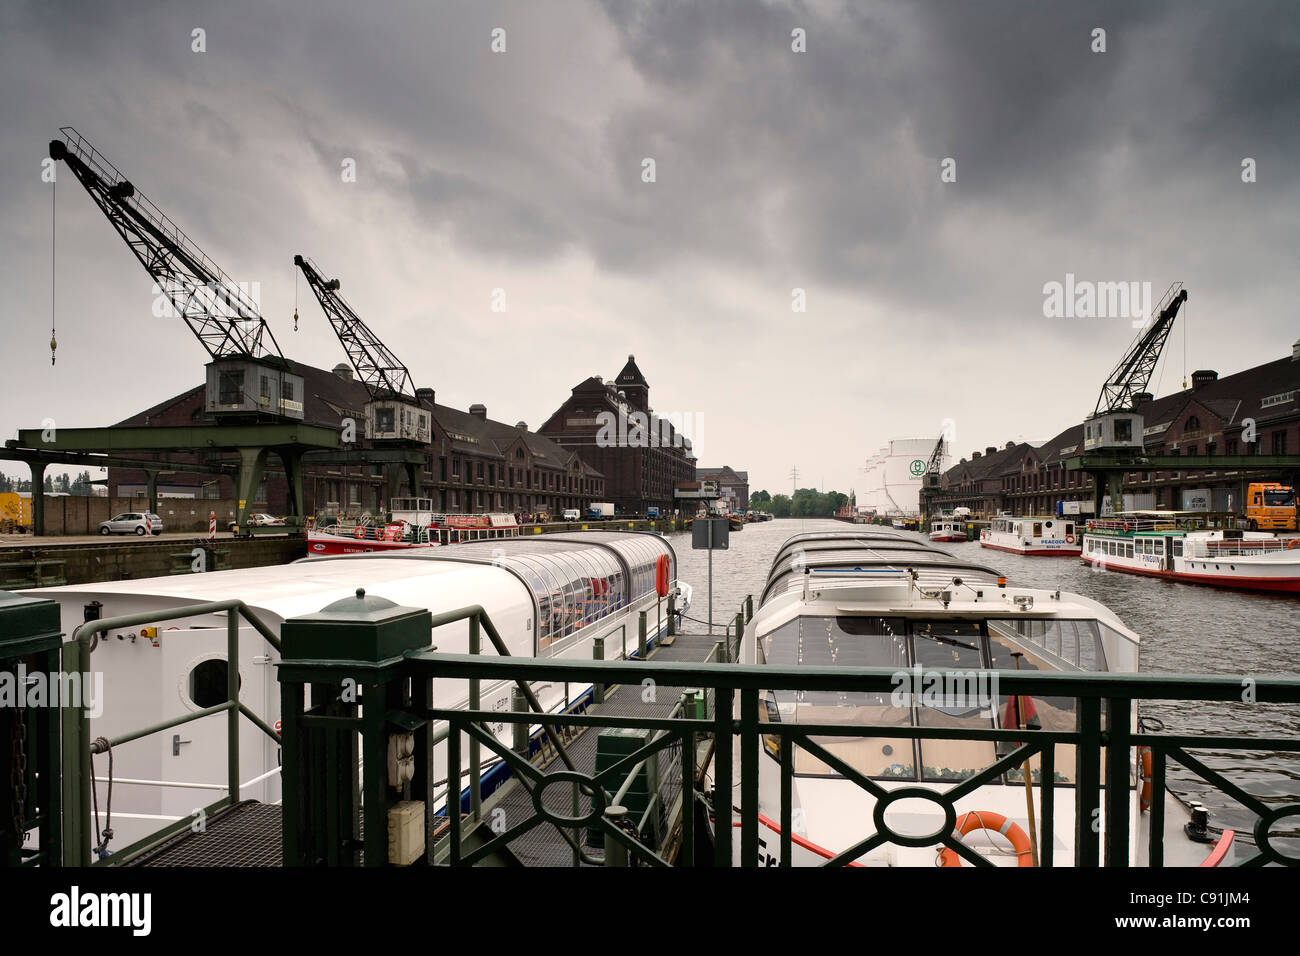 Excursion boats at Westhafen, Berlin, Germany, Europe Stock Photo